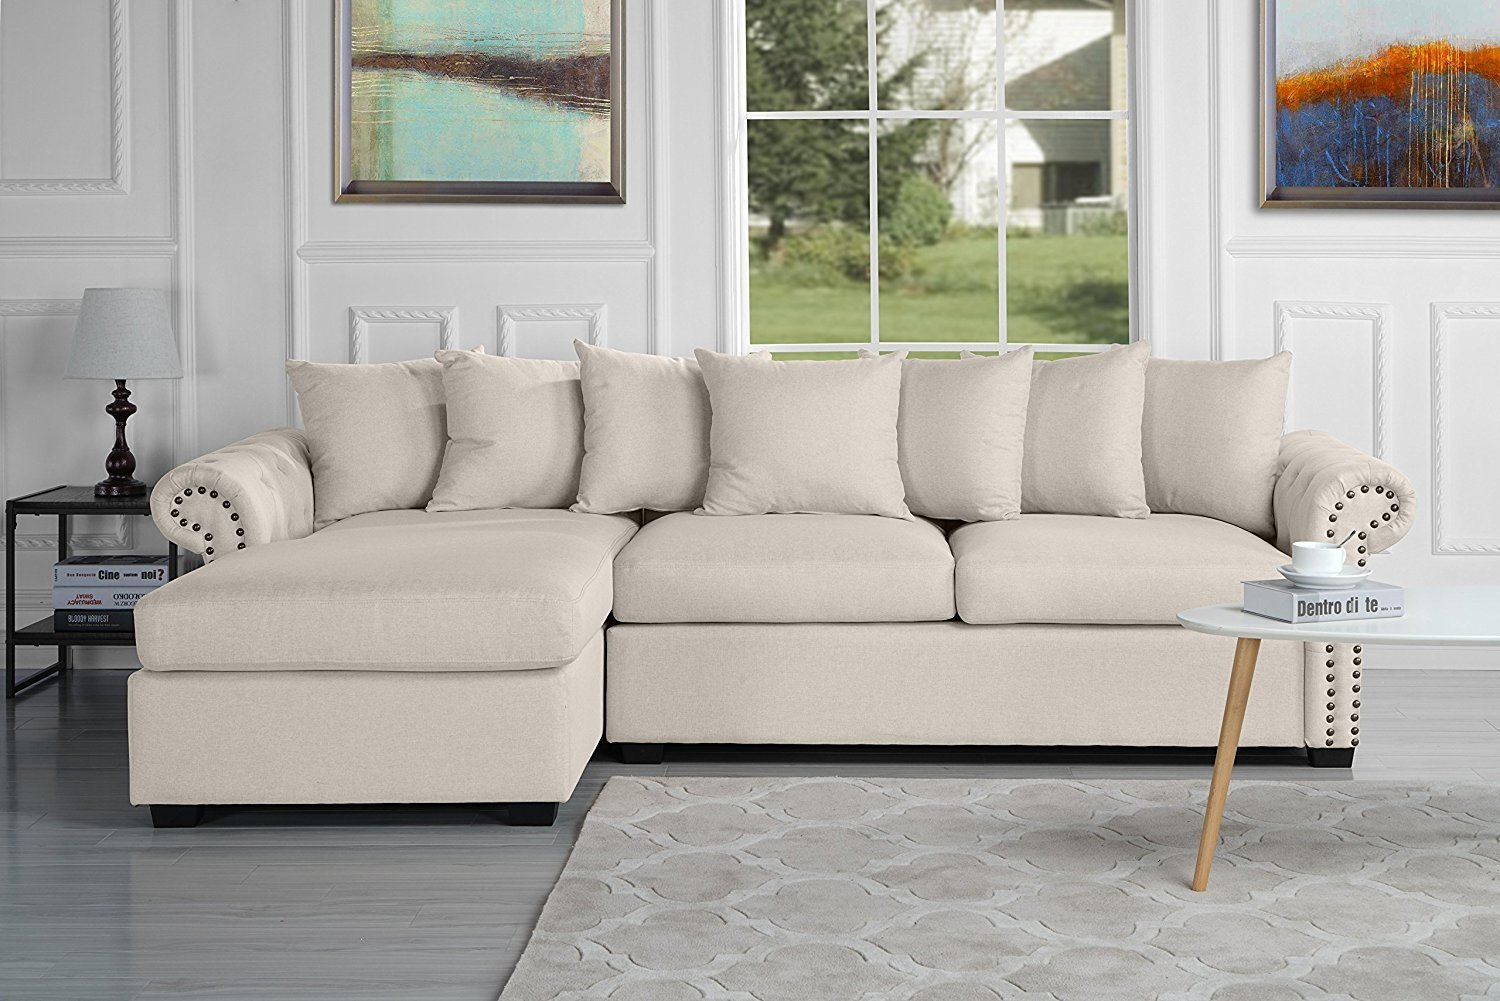 Gentil Modern Large Tufted Linen Fabric Sectional Sofa, Scroll Arm L Shape Couch  (Beige